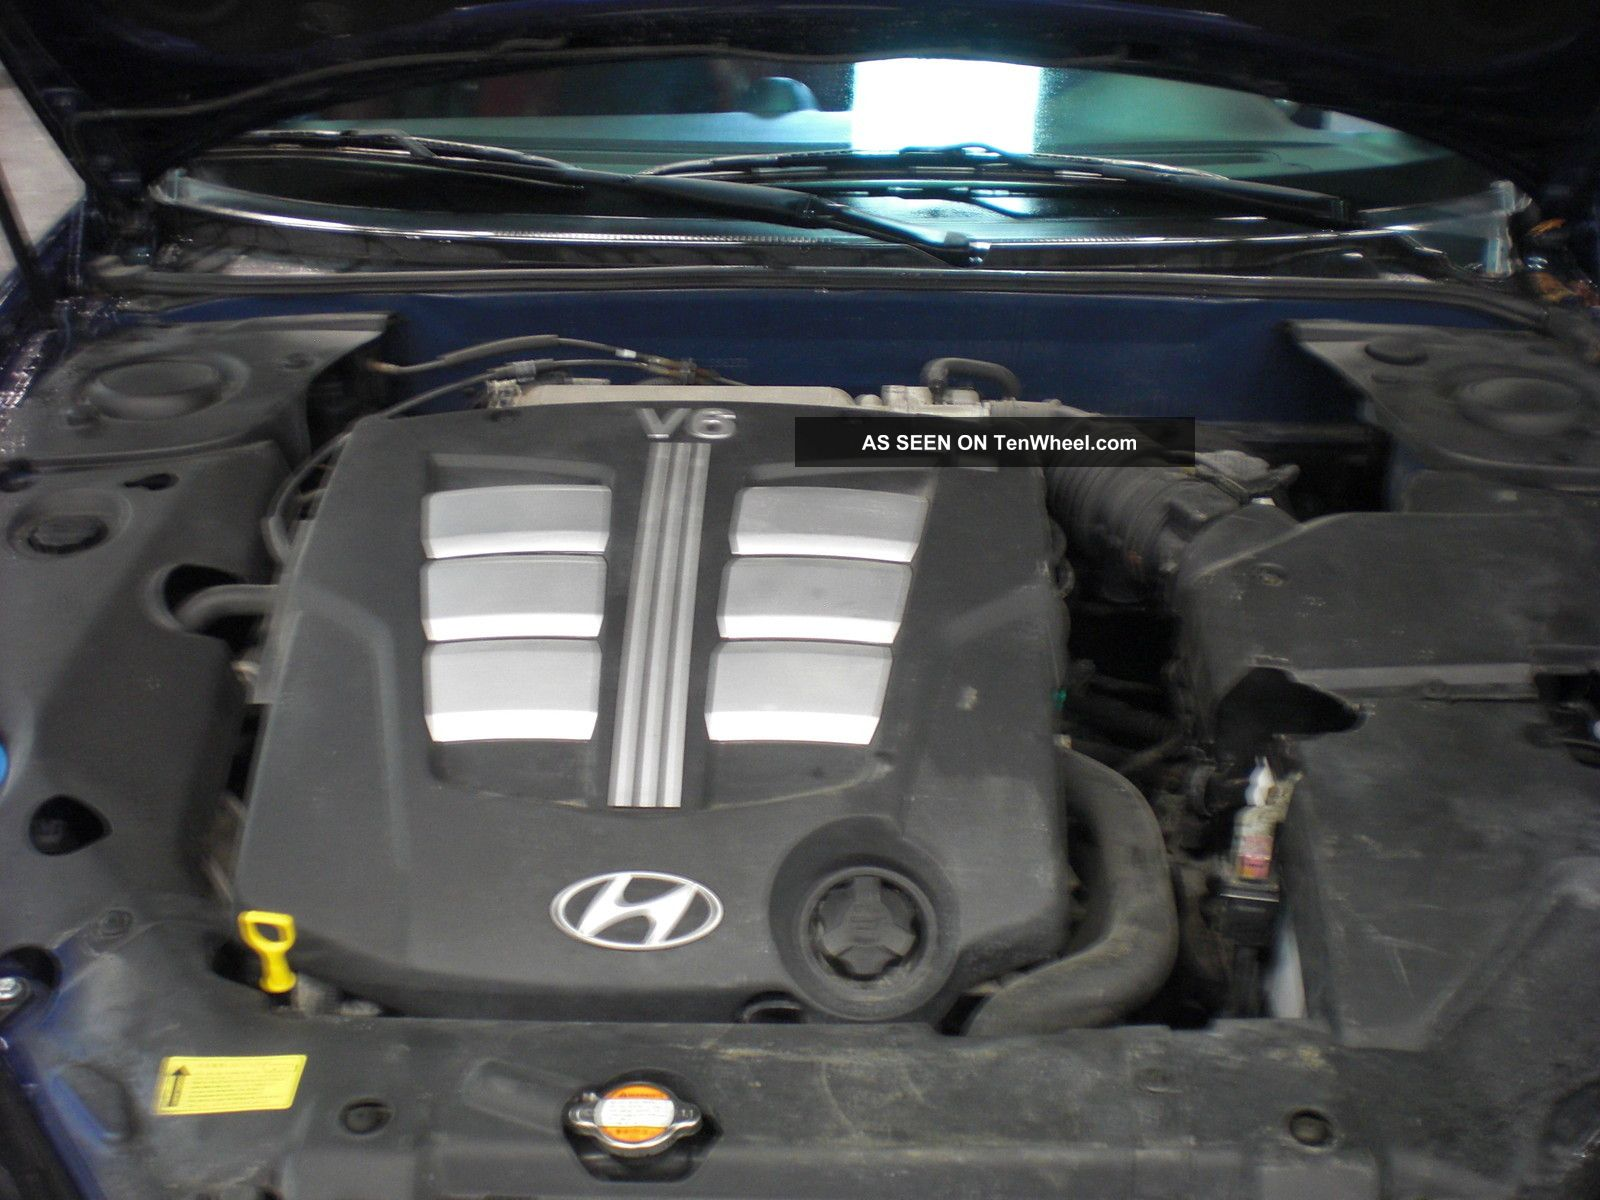 2013 Nissan Sentra Owners Manual >> 2007 Hyundai Tiburon Se With 2. 7 Liter Motor And 6 Speed ...